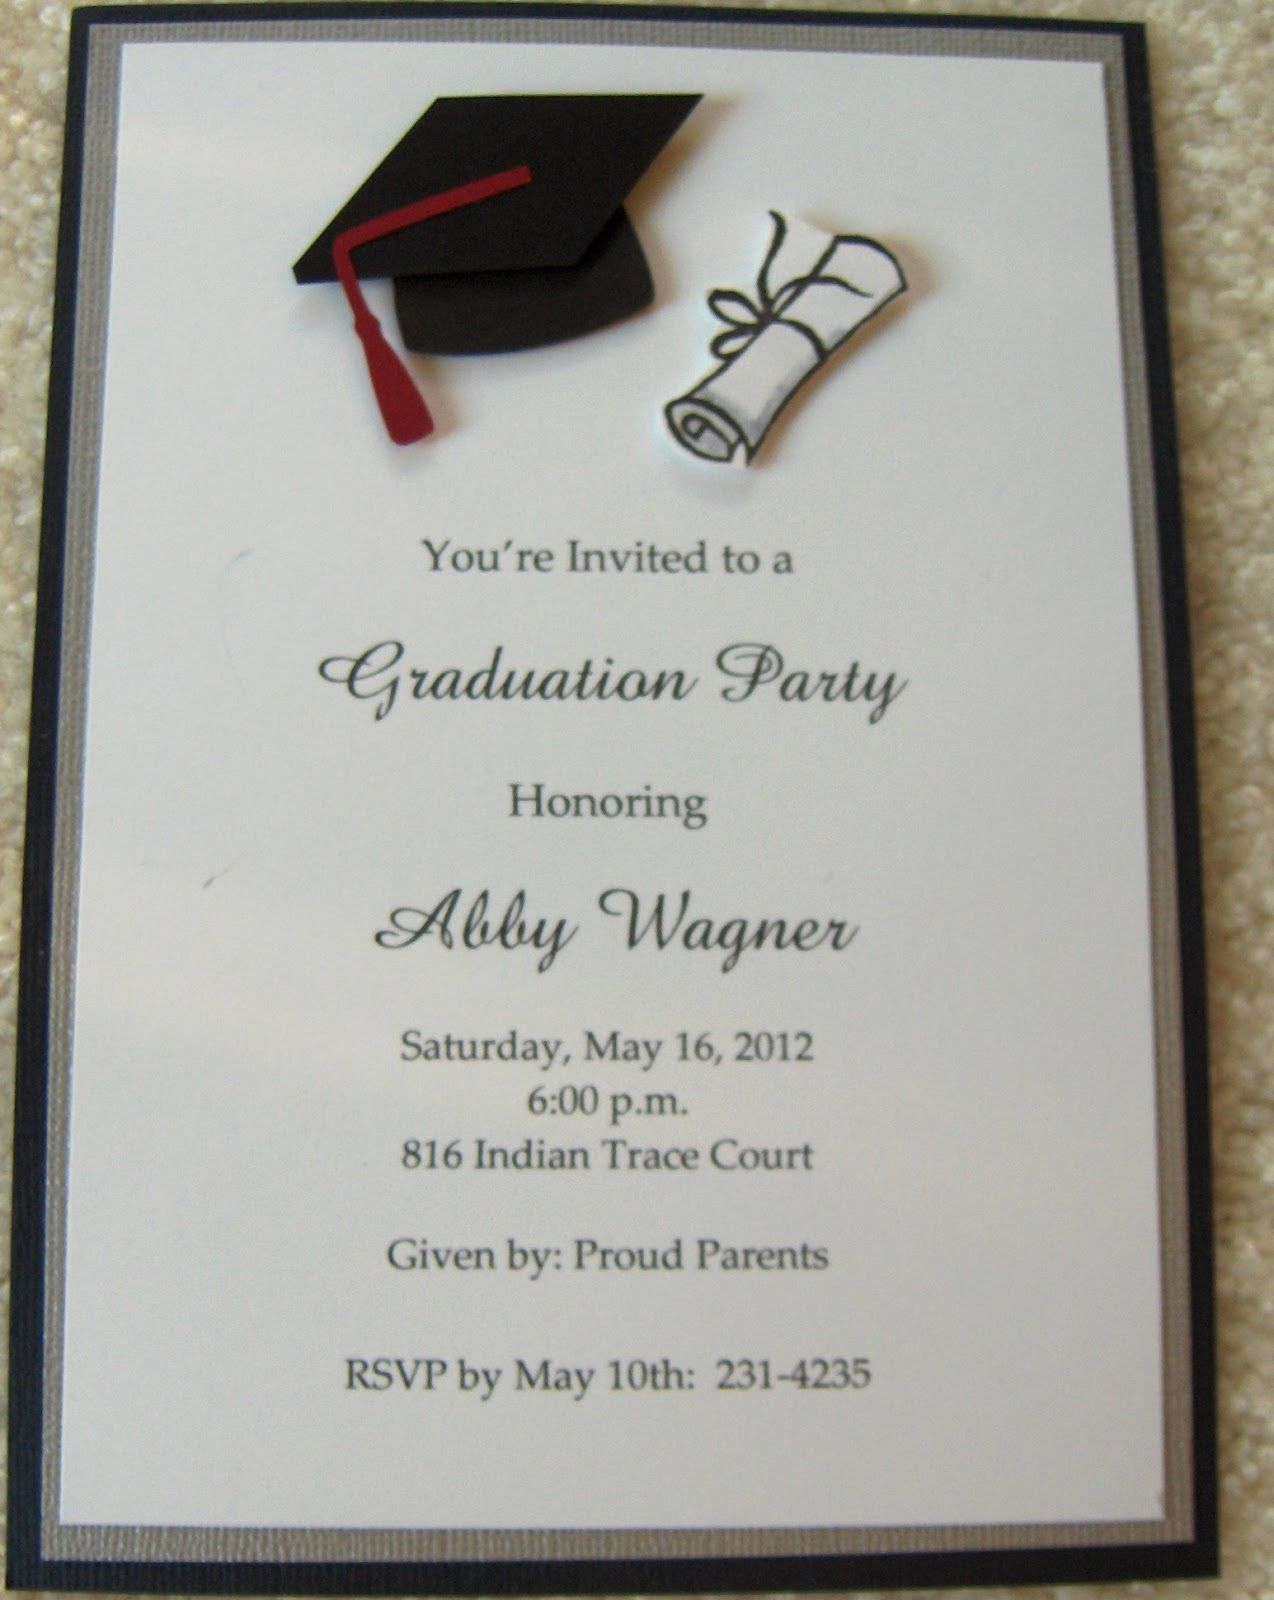 graduation invitations google search graduation pinterest graduation party invitations. Black Bedroom Furniture Sets. Home Design Ideas